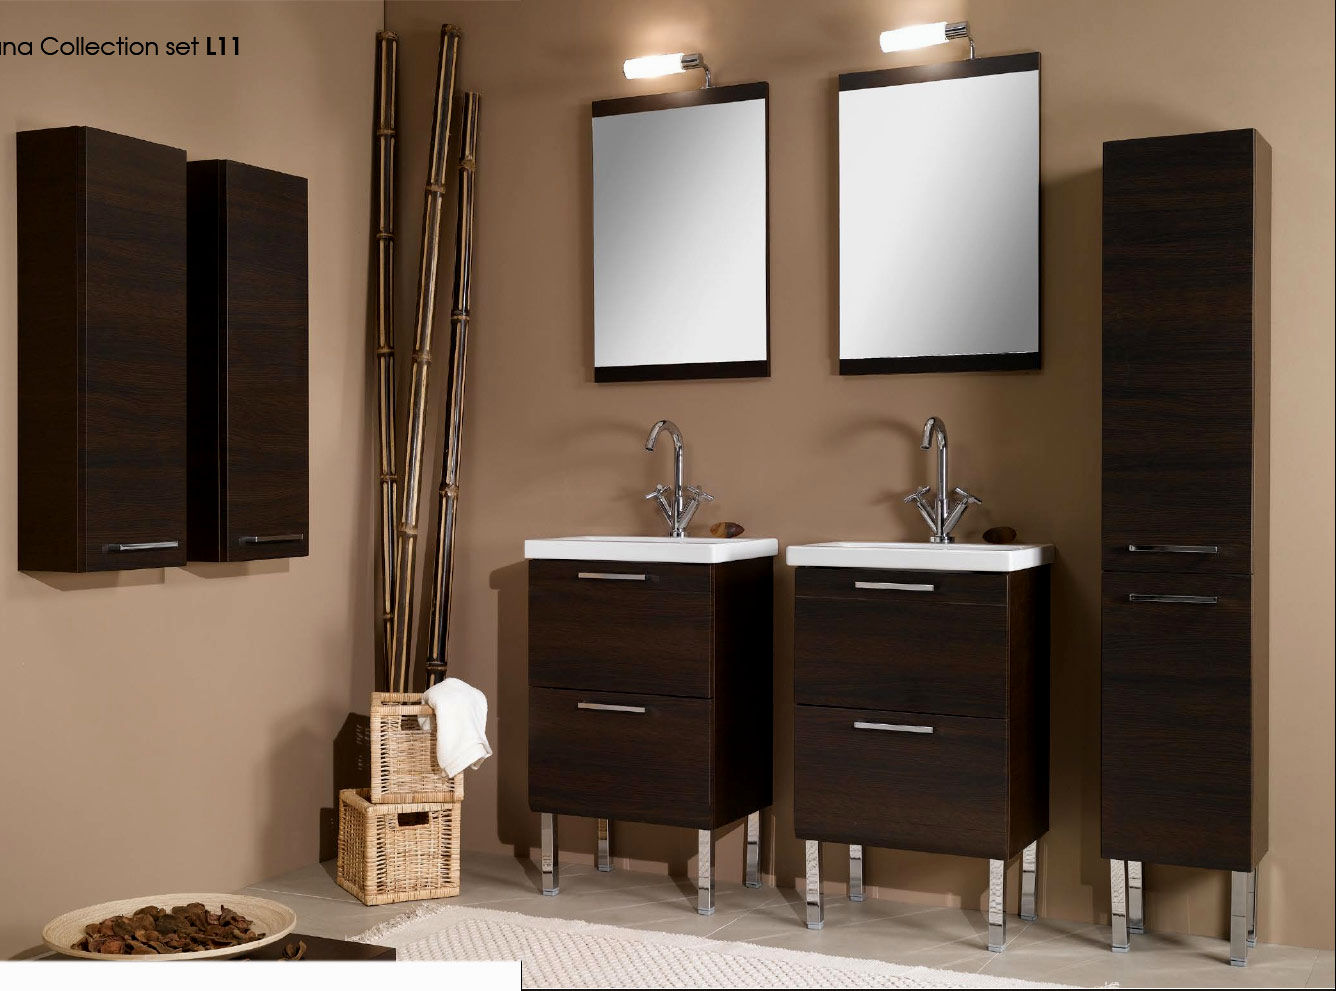 stylish bathroom shower storage photo-Top Bathroom Shower Storage Pattern